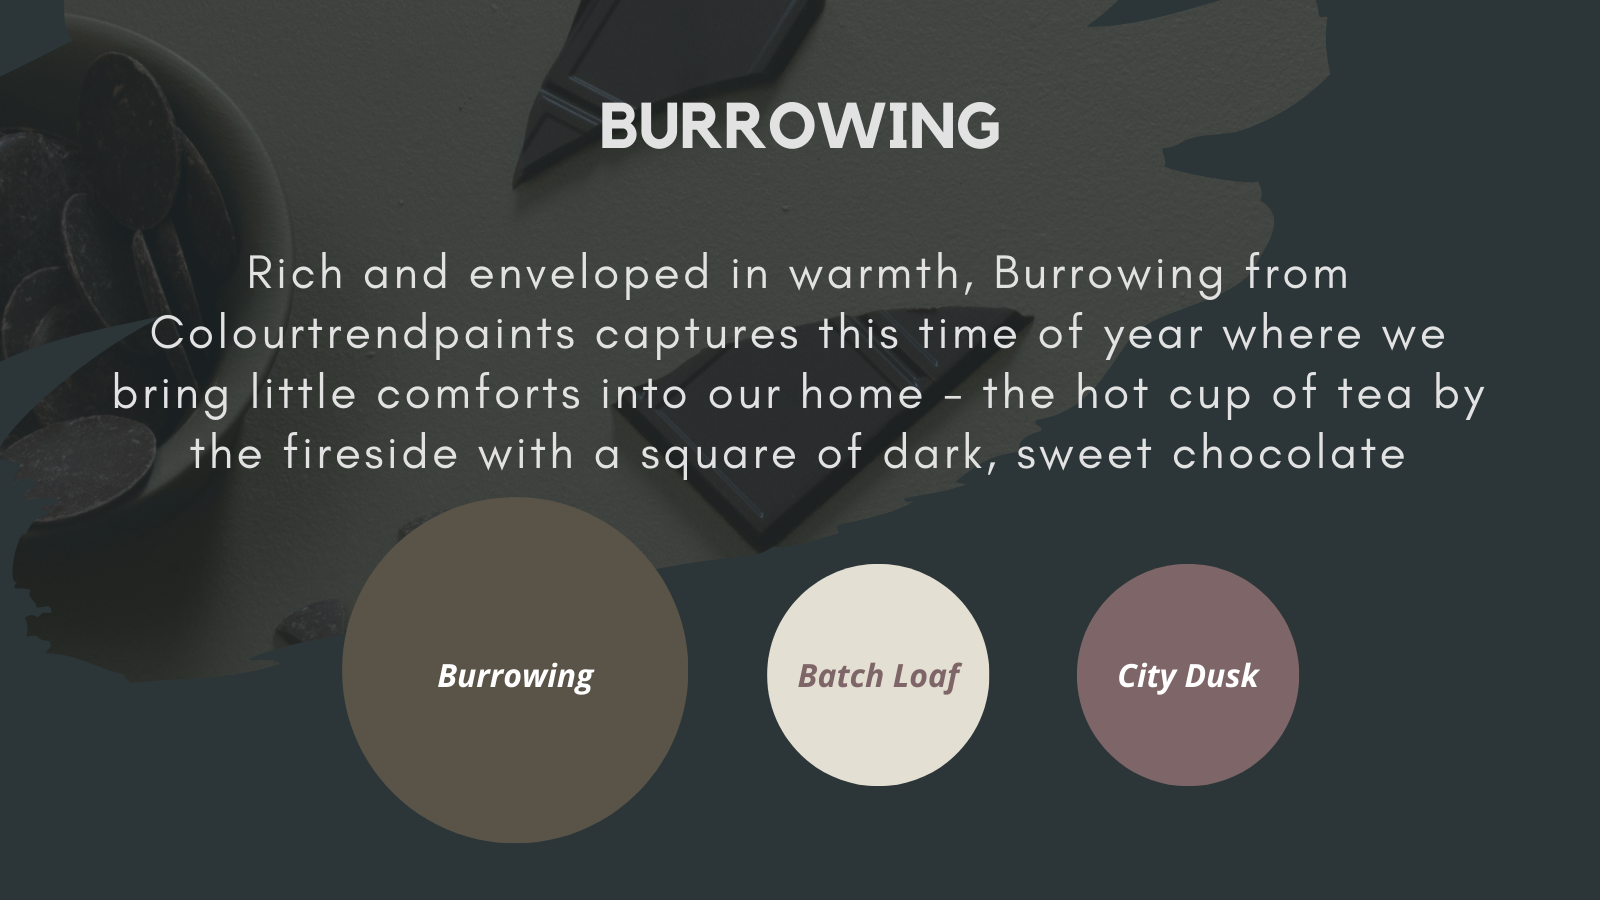 Burrowing Colourtrend